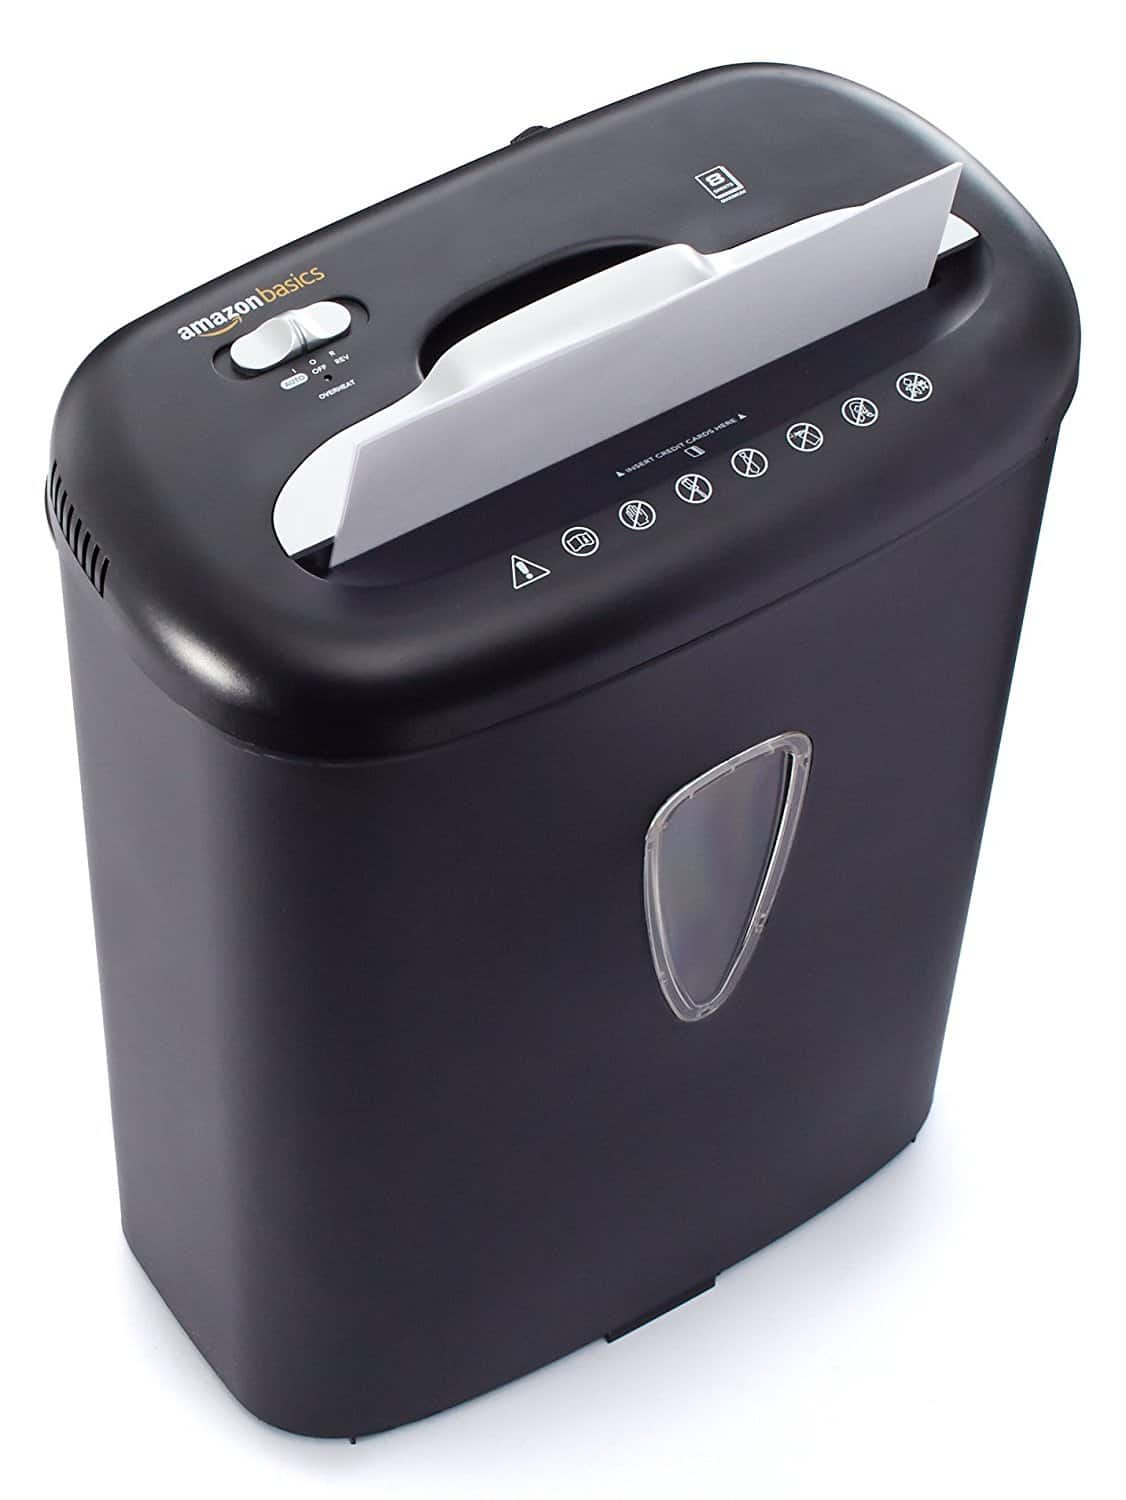 AmazonBasics 8-Sheet Cross-Cut Paper and Credit Card Shredder